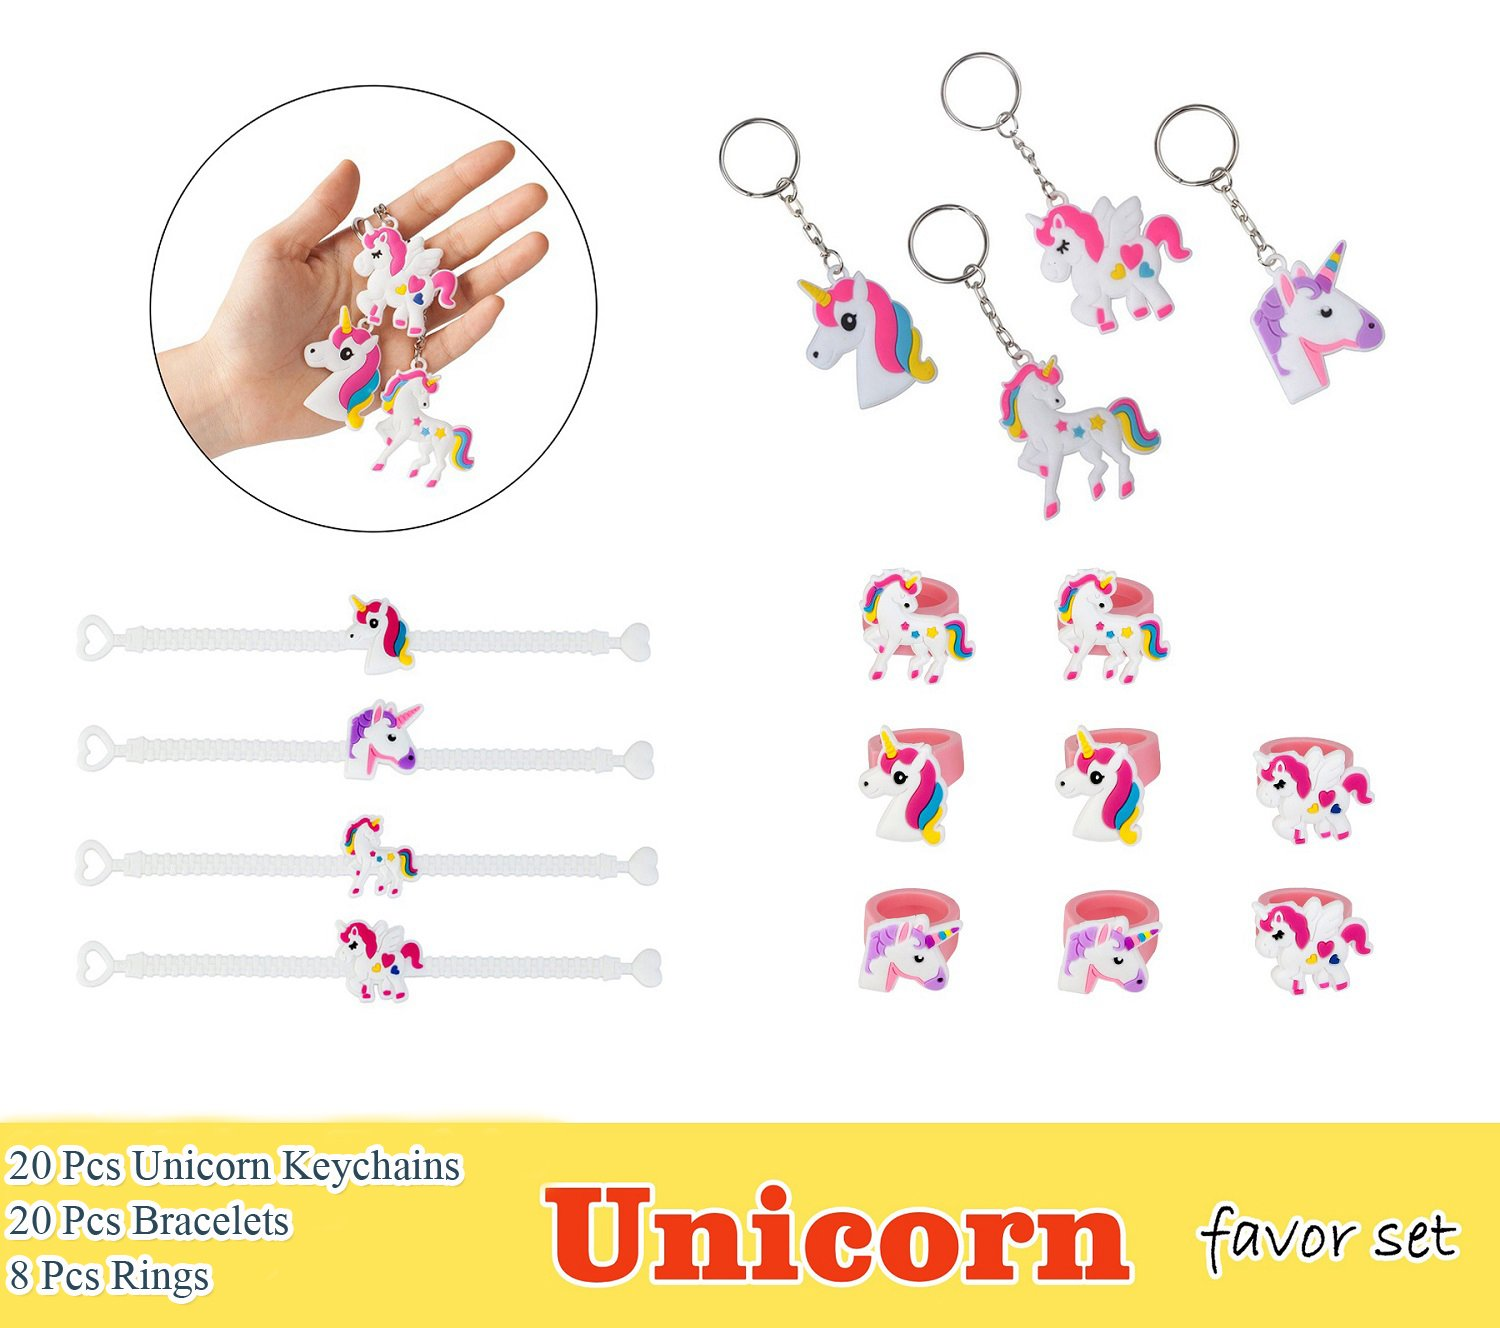 Unicorn Party Favor Set, Unicorn Toy Novelty Birthday Party Favors Supplies for Kids Girls, Bracelets Keychains and Rings (Pack of 48)